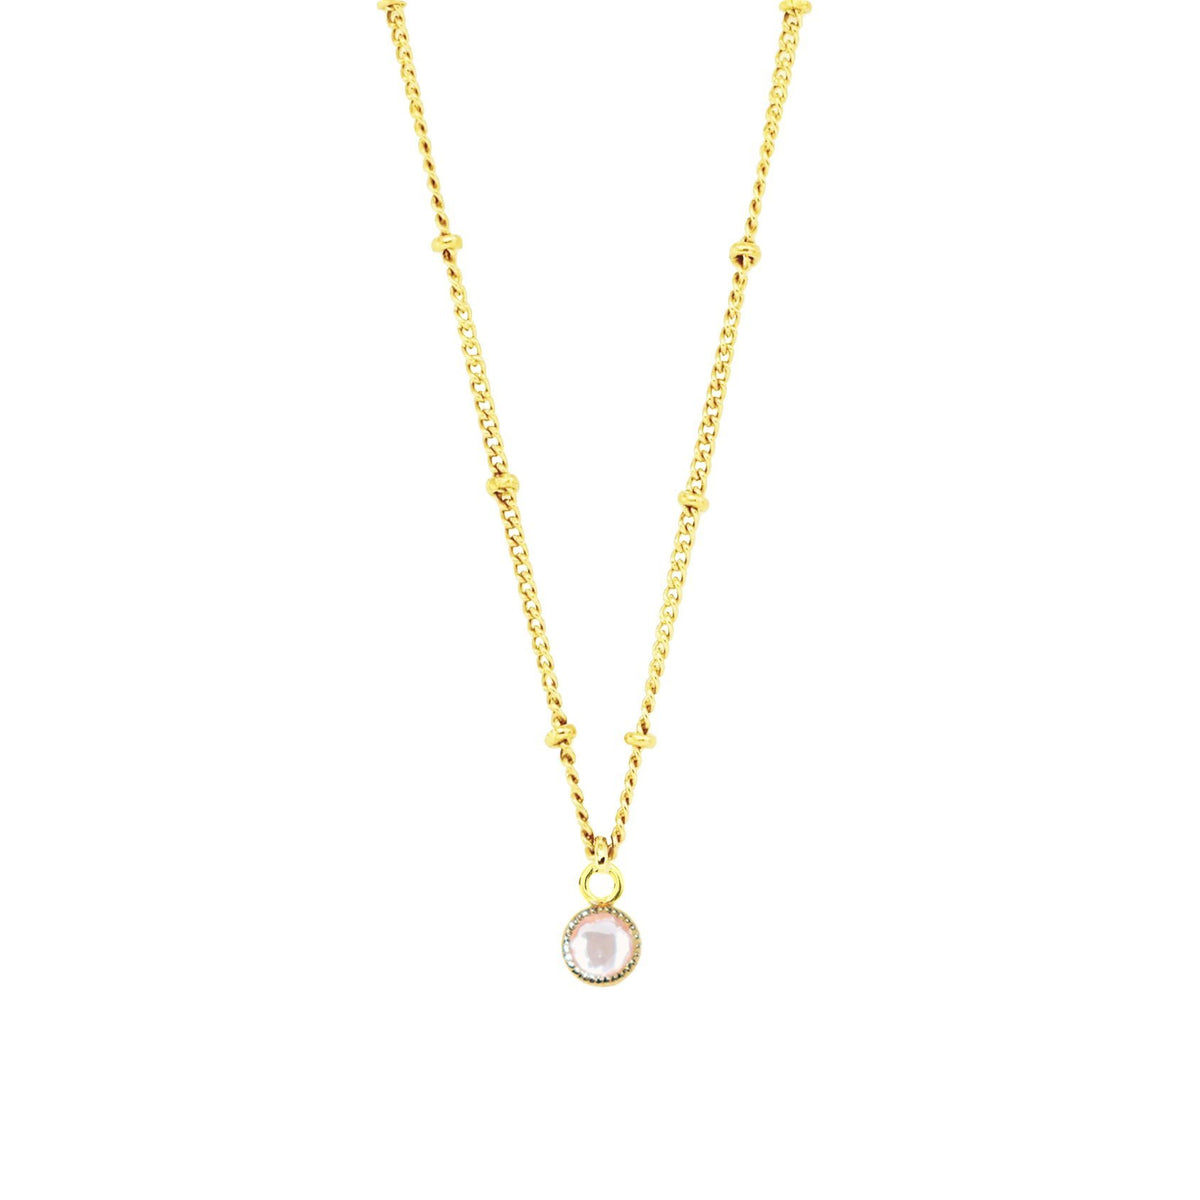 LEGACY ICON - PINK QUARTZ & GOLD - SO PRETTY CARA COTTER